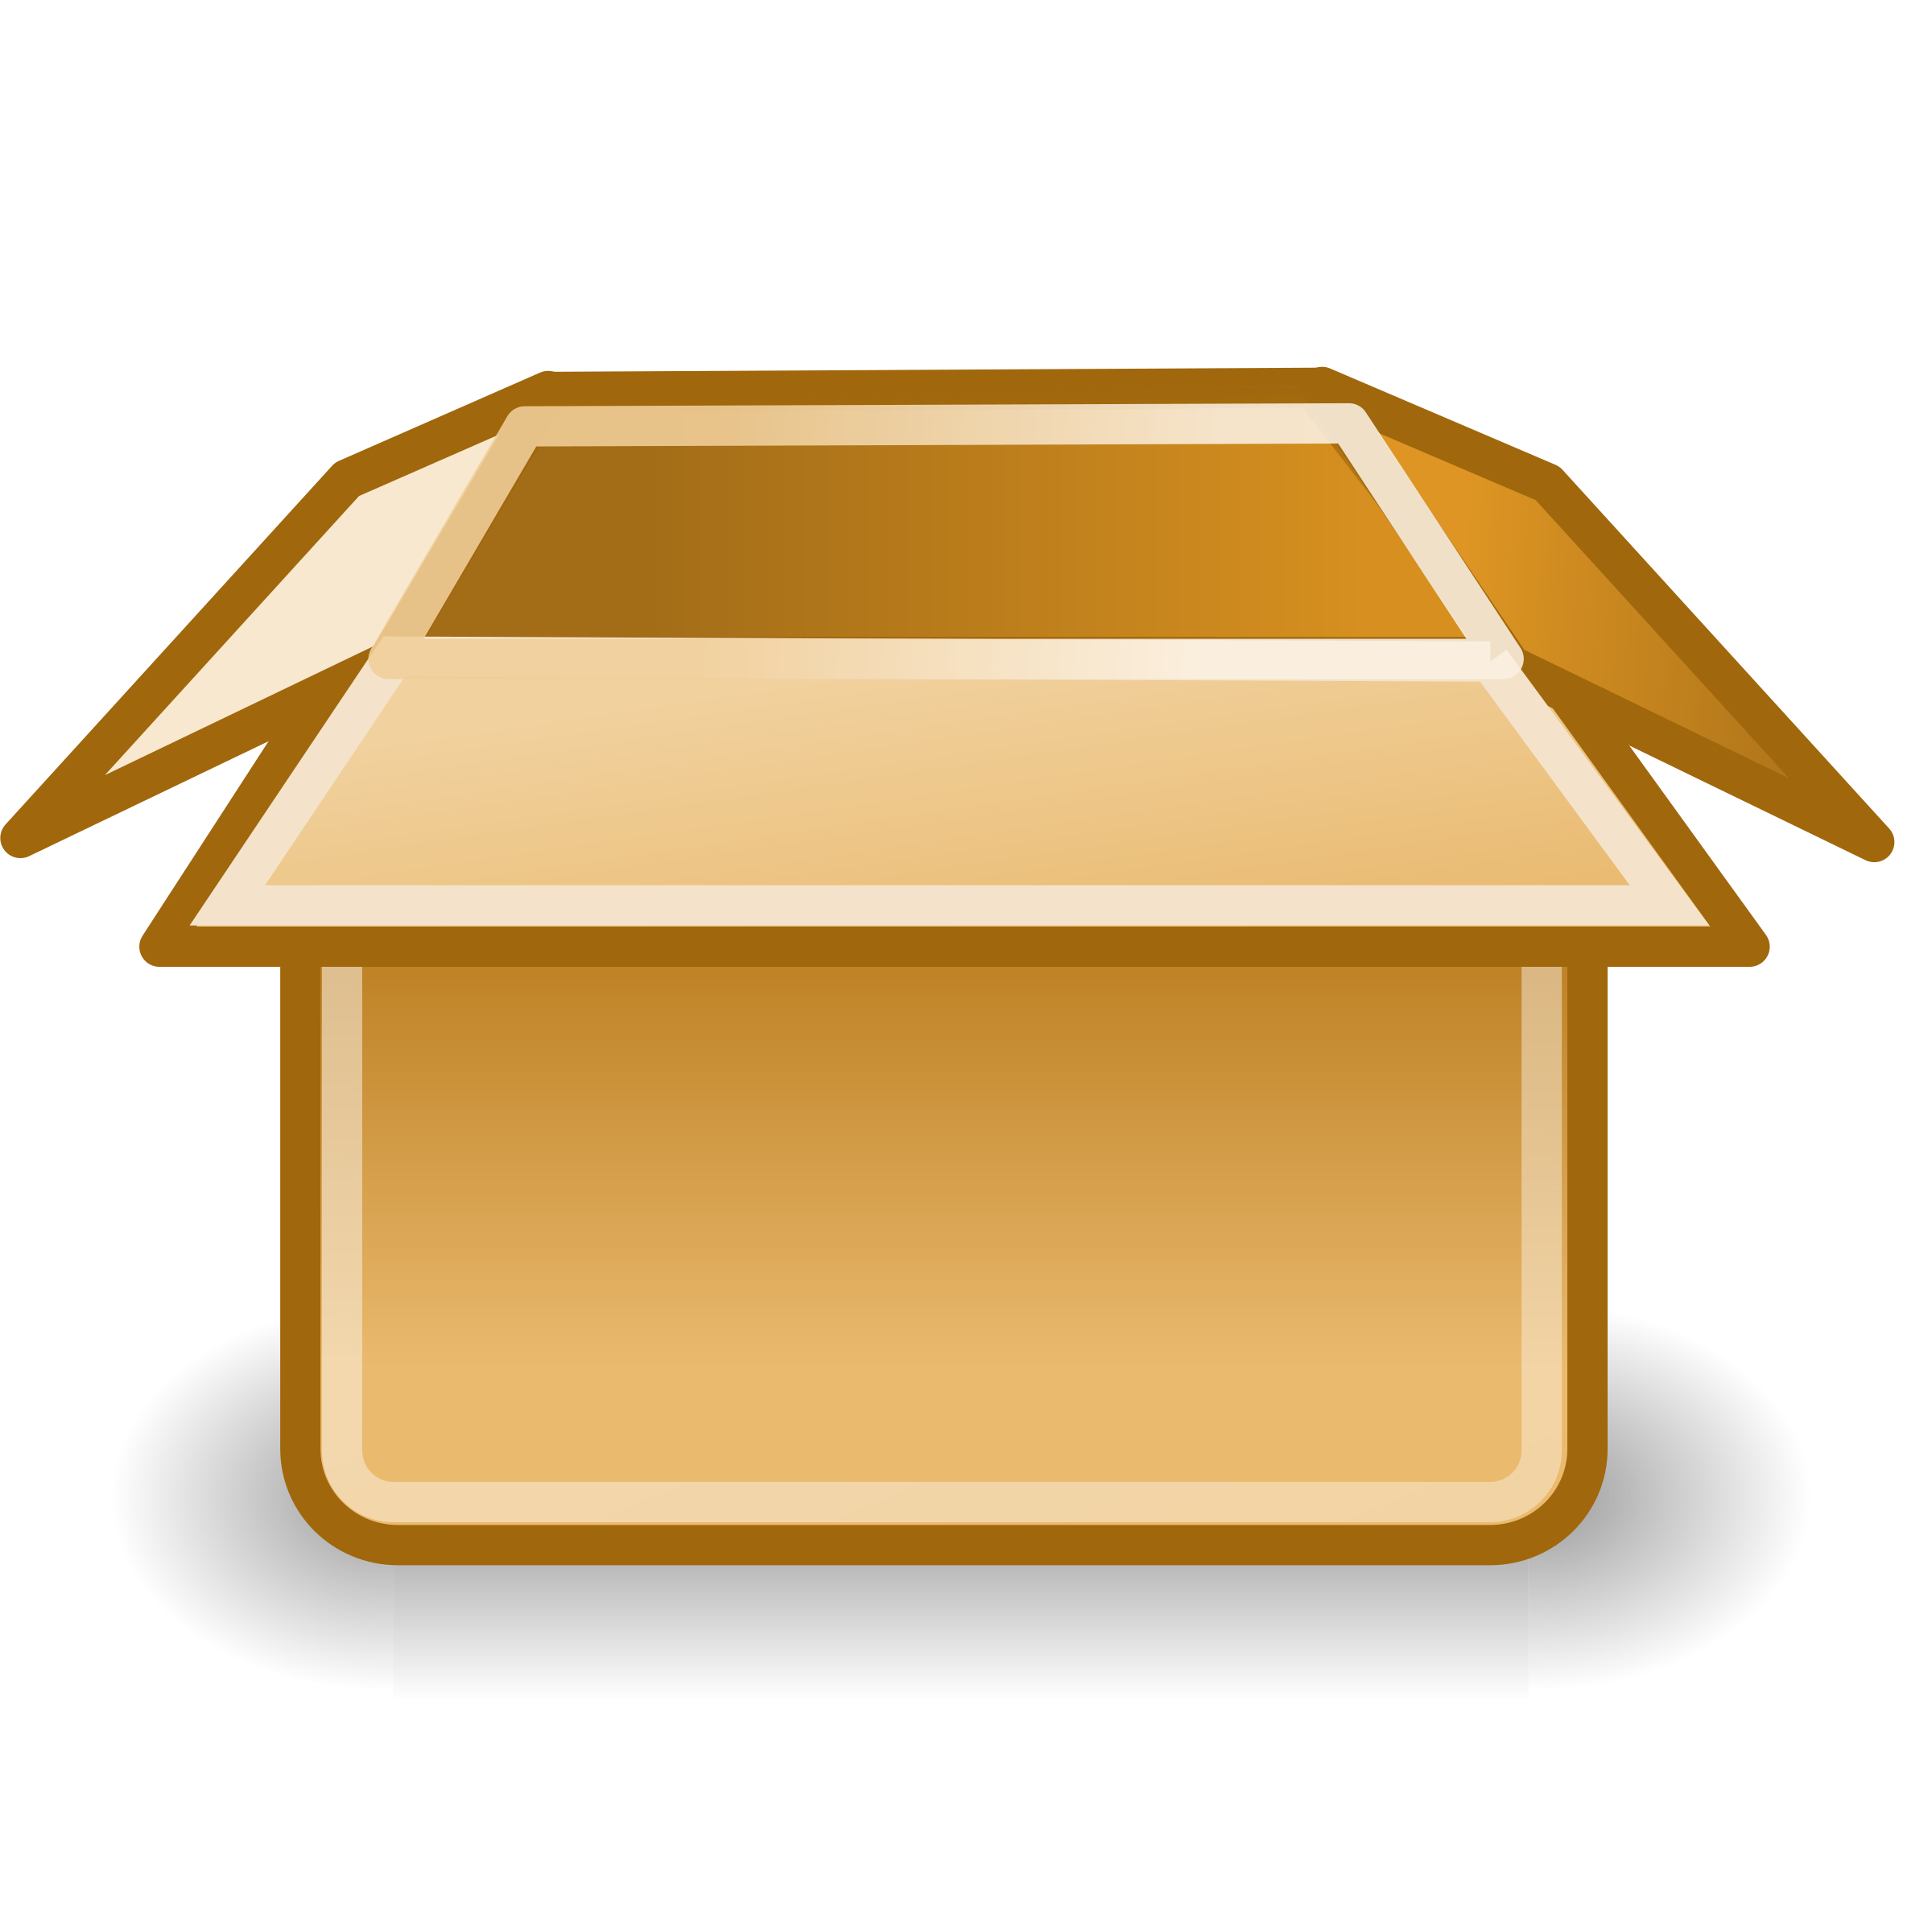 Empty box png. Cardboard icons free and